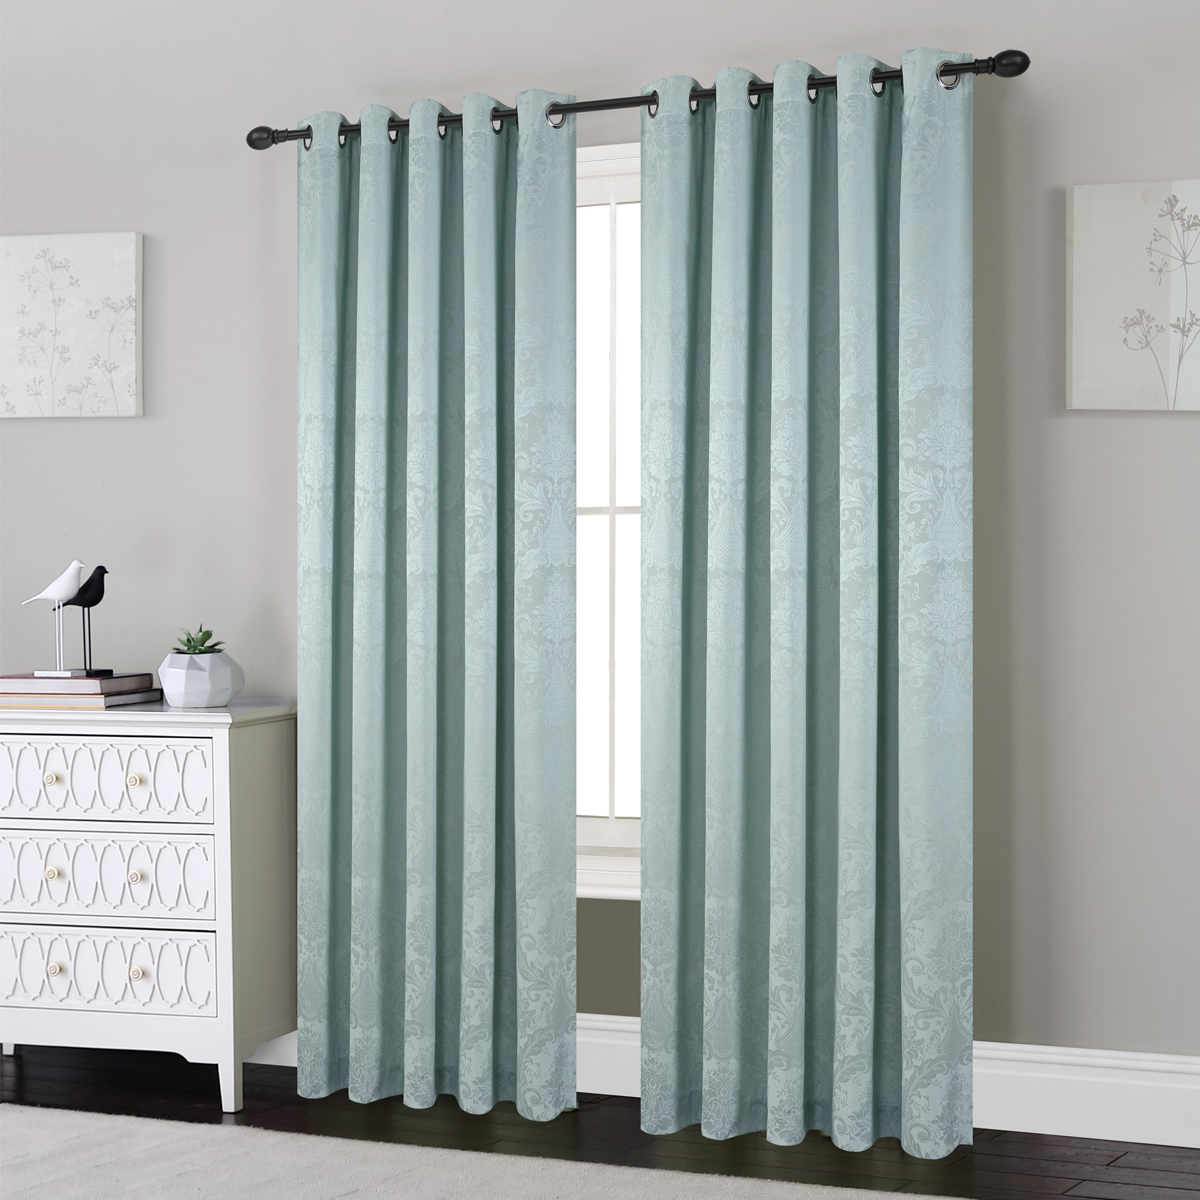 Bethan Duck Egg Ready Made Eyelet Curtains. Expand